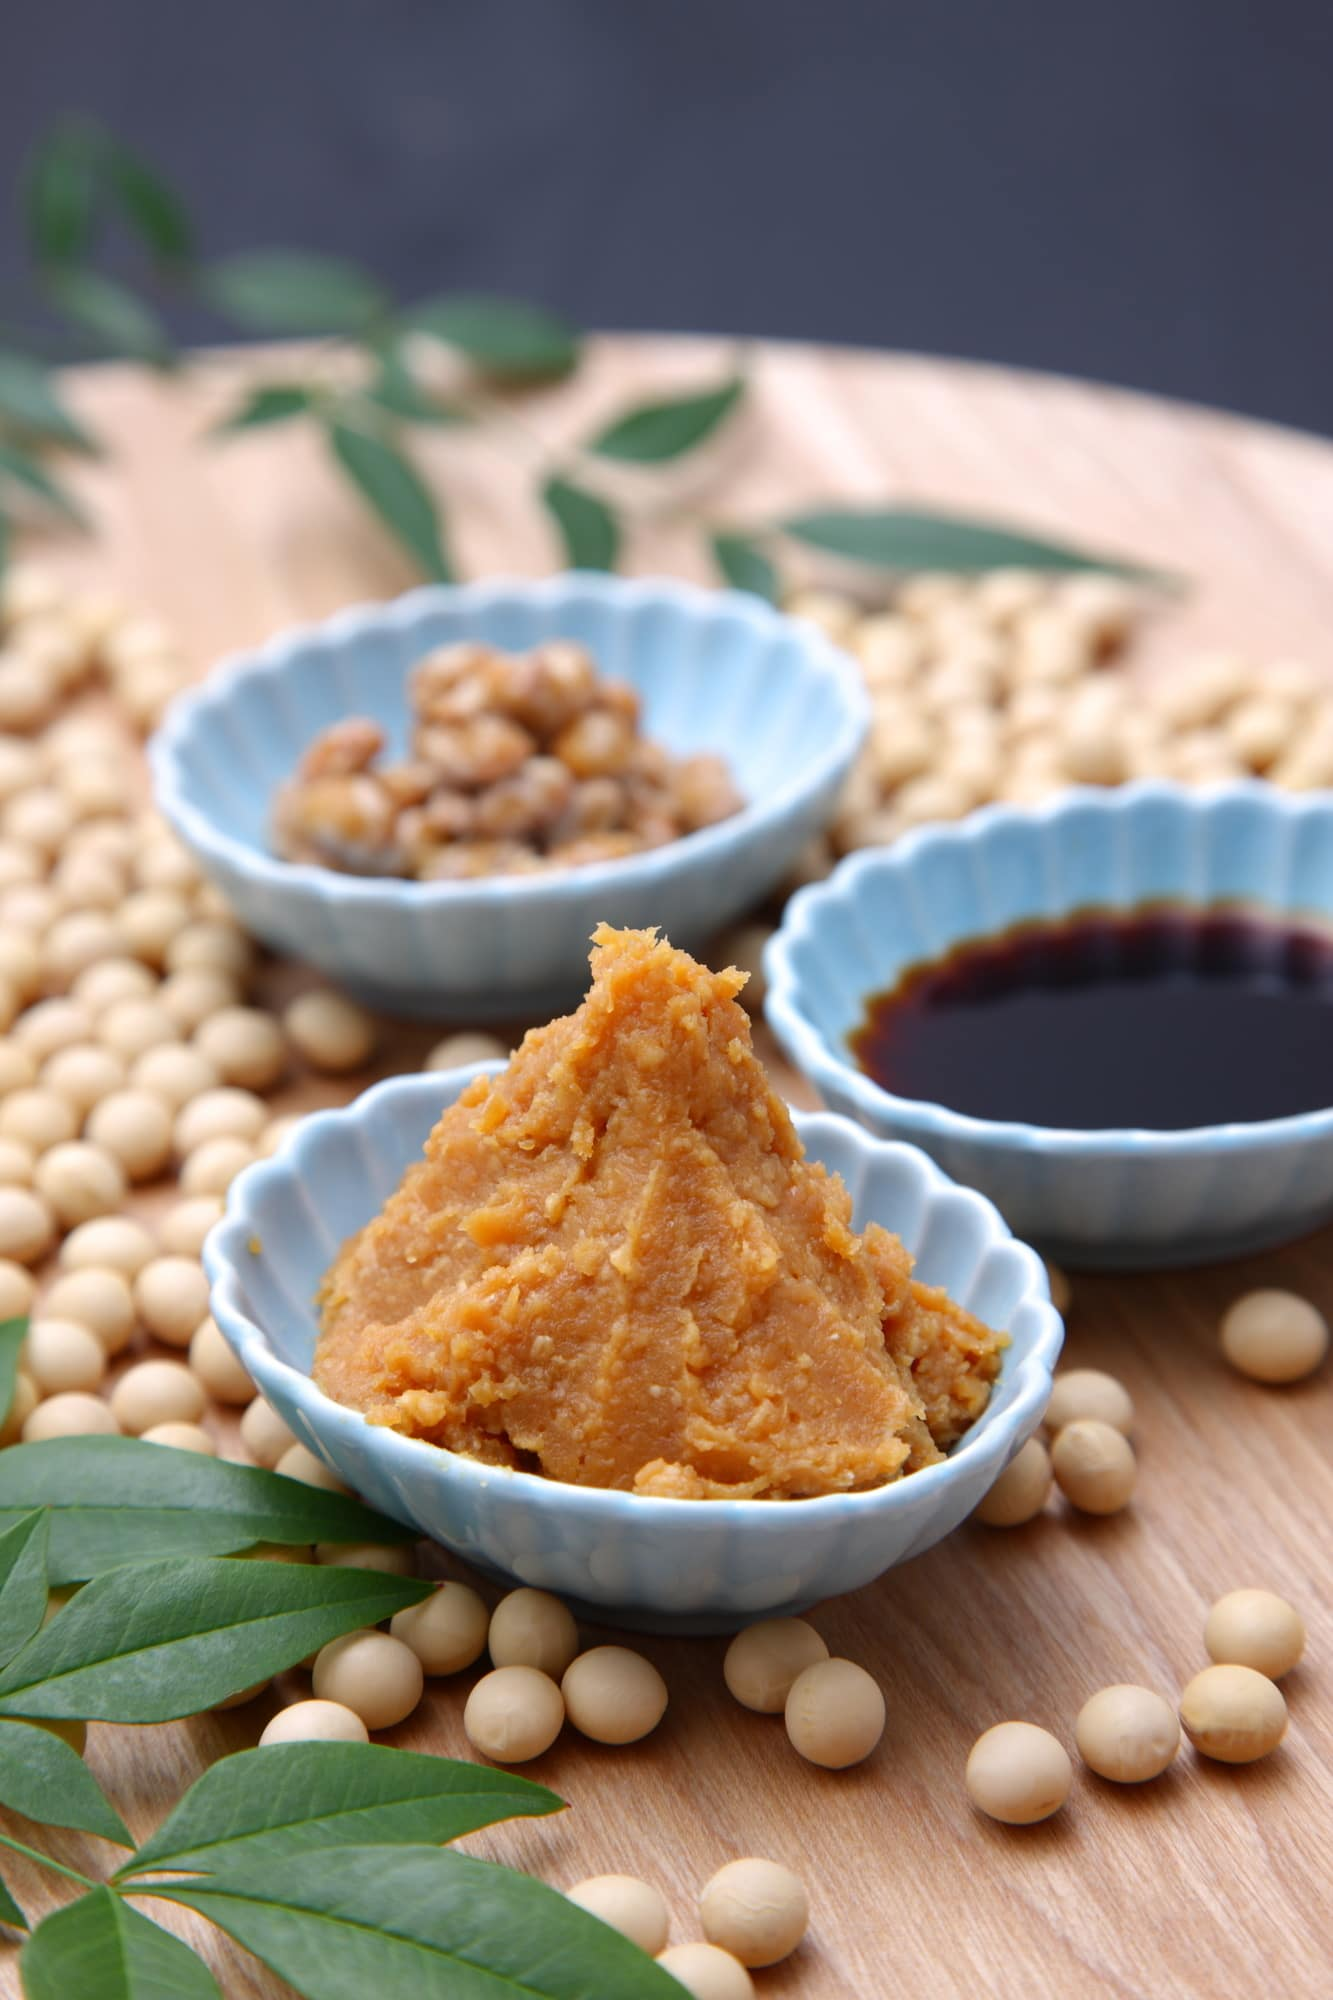 5 Amazing Uses for Miso Paste